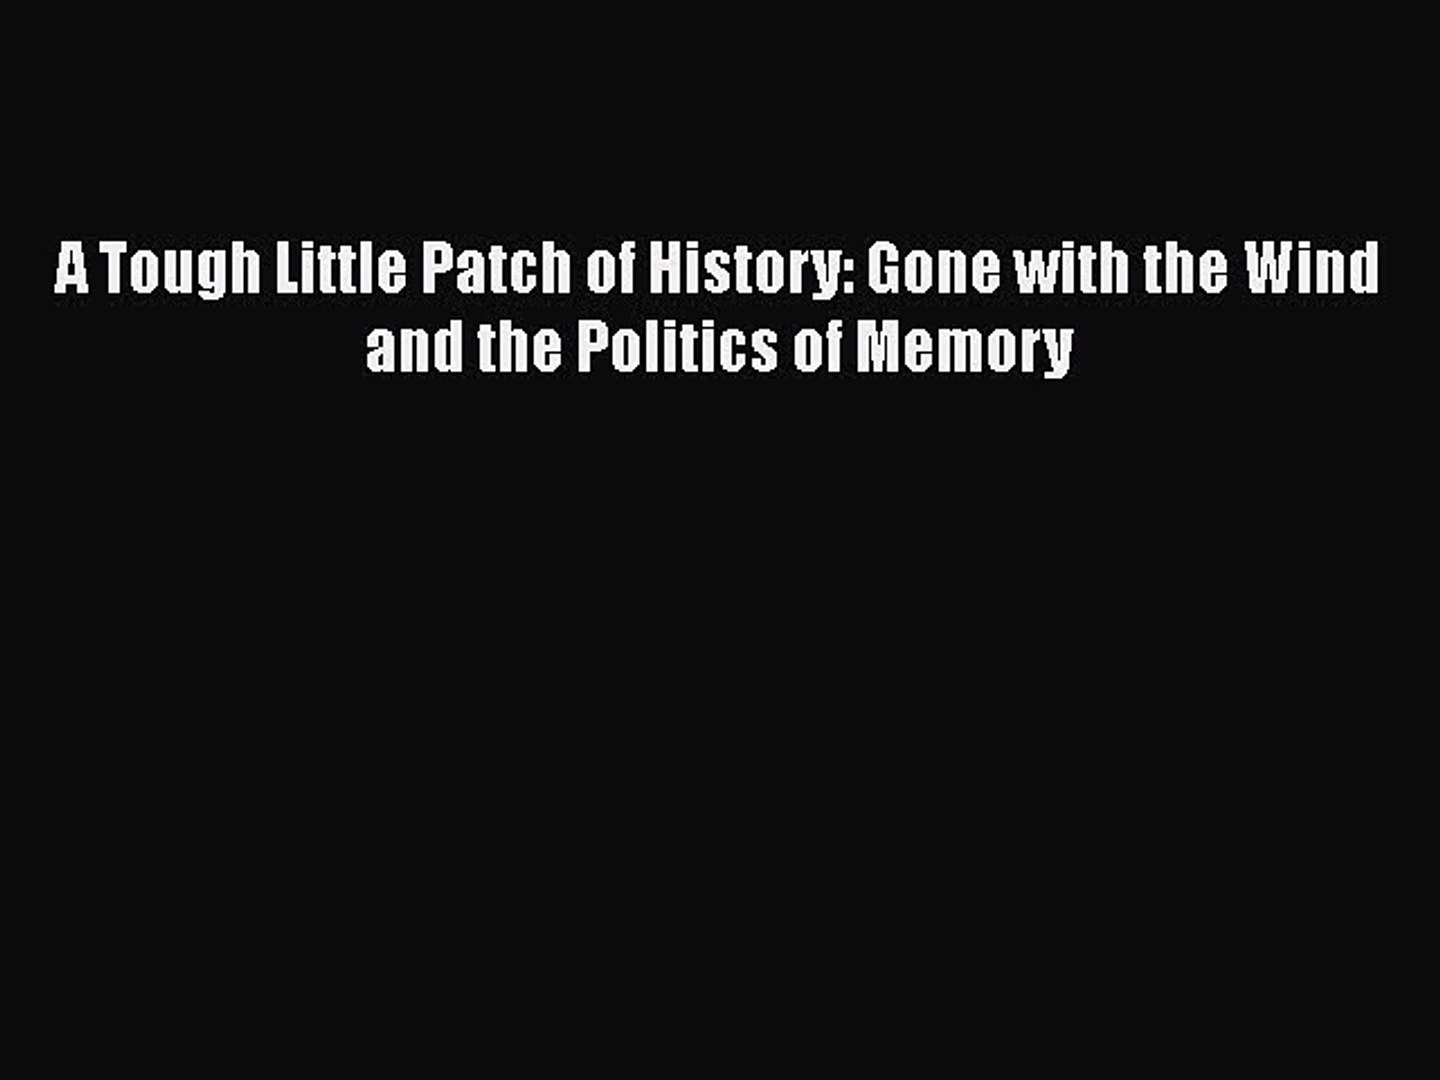 Download A Tough Little Patch of History: Gone with the Wind and the Politics of Memory Free